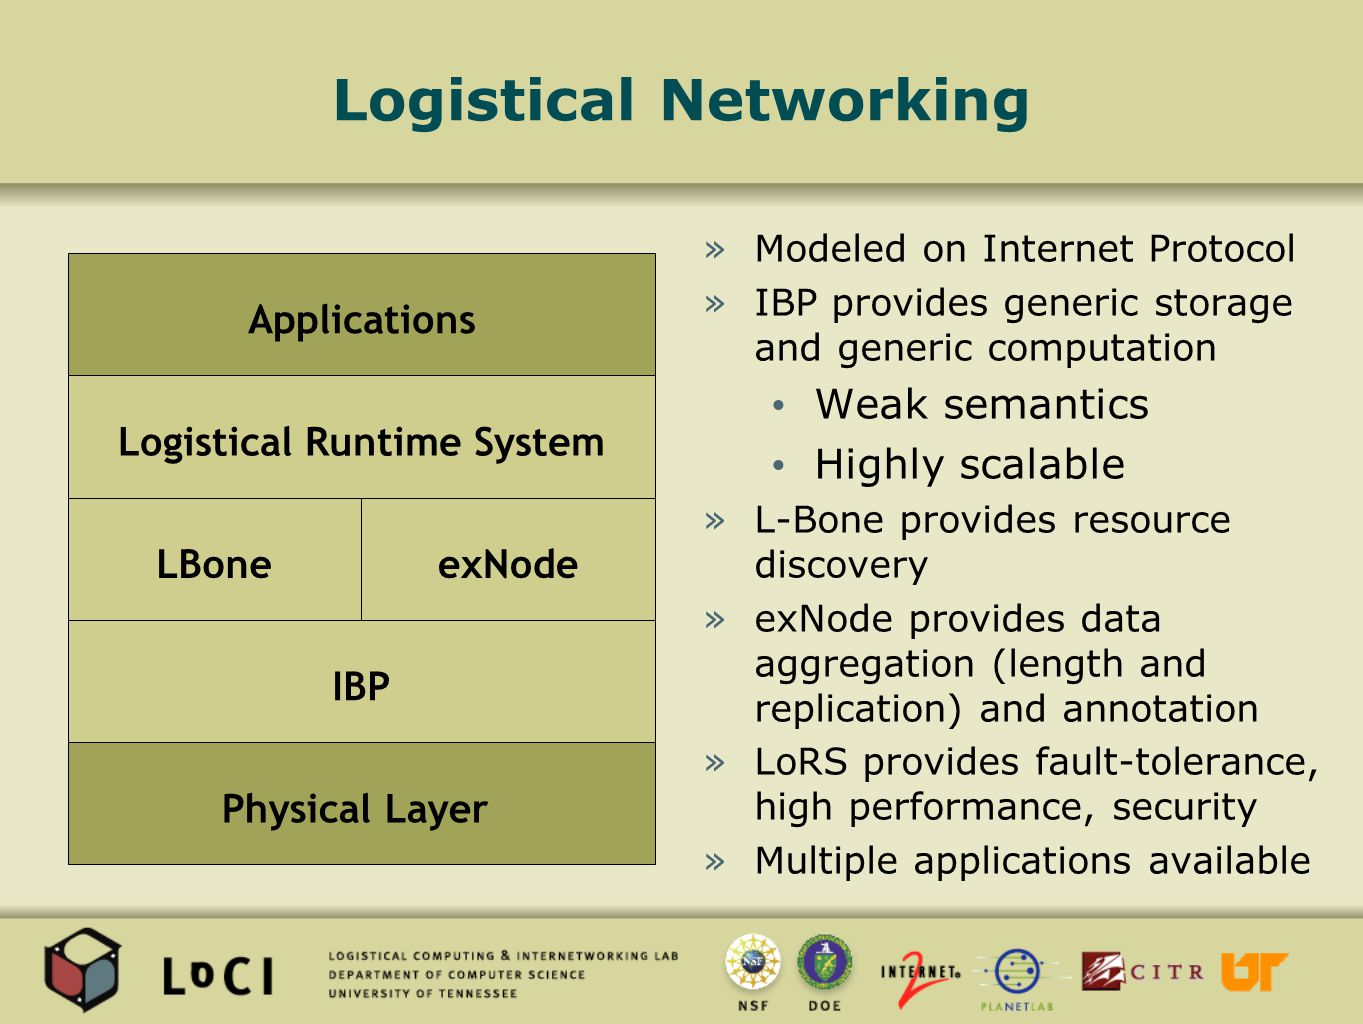 Logistical Networking »Modeled on Internet Protocol »IBP provides generic storage and generic computation Weak semantics Highly scalable »L-Bone provides resource discovery »exNode provides data aggregation (length and replication) and annotation »LoRS provides fault-tolerance, high performance, security »Multiple applications available Physical Layer IBP Logistical Runtime System Applications LBoneexNode